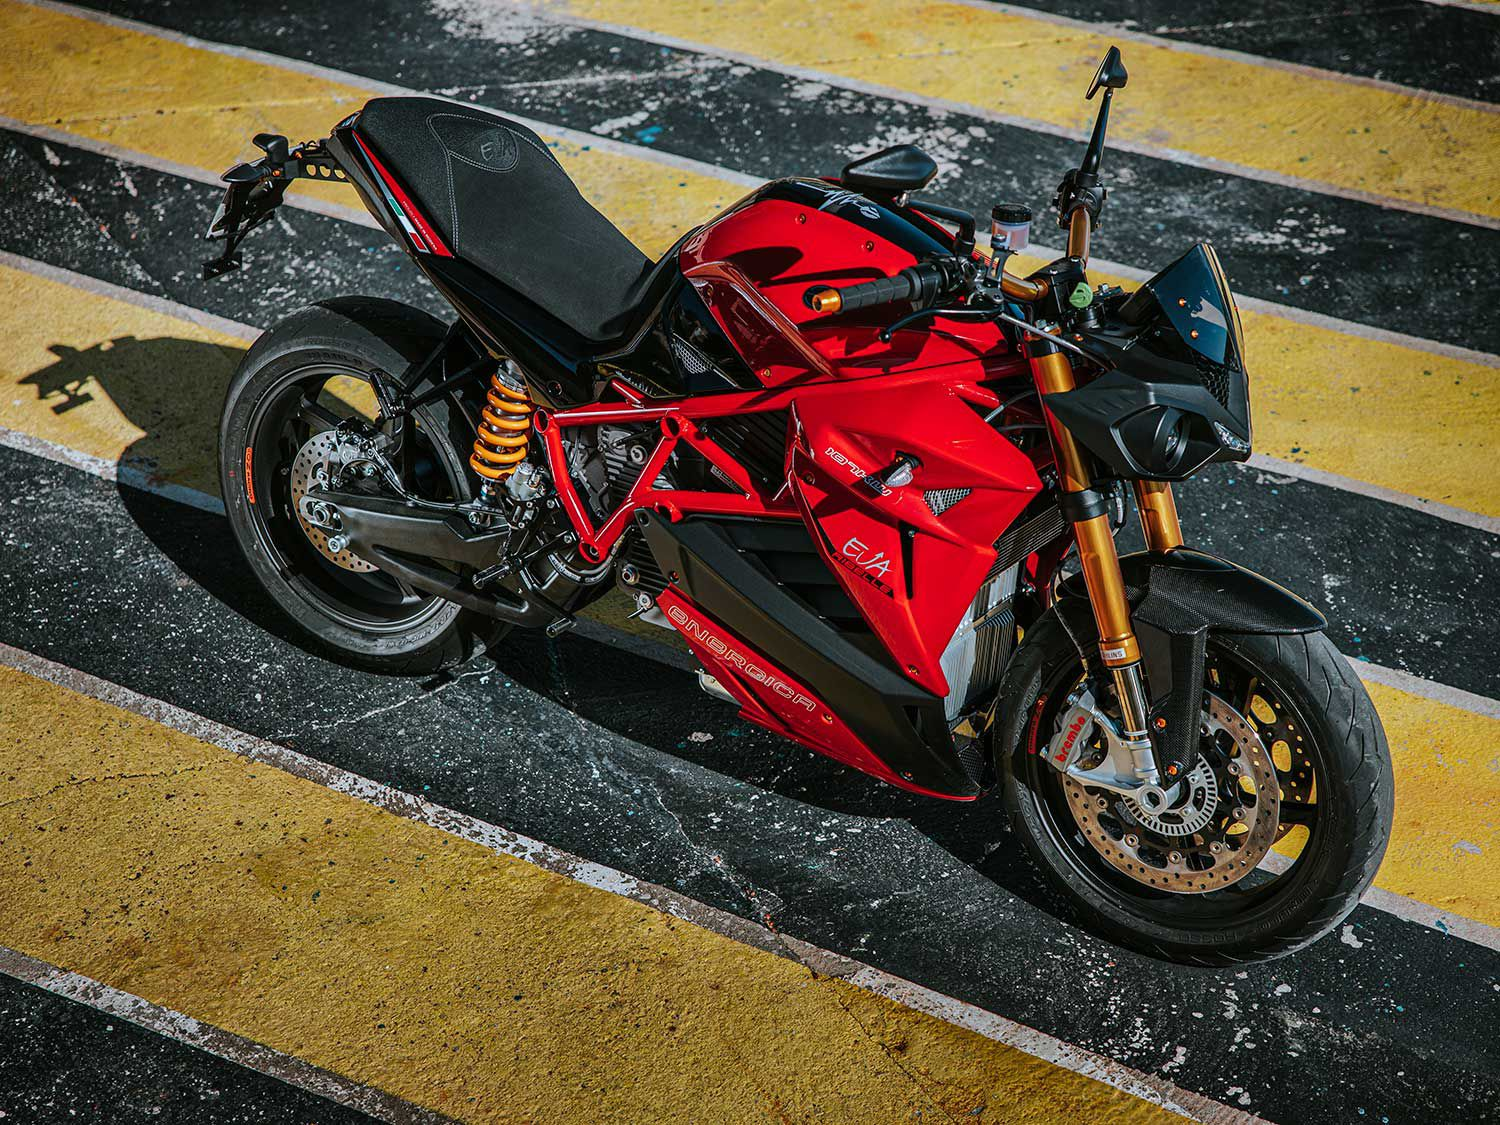 Italian electric motorcycle manufacturer Energica announces an updated streetfighter in the Eva Ribelle.